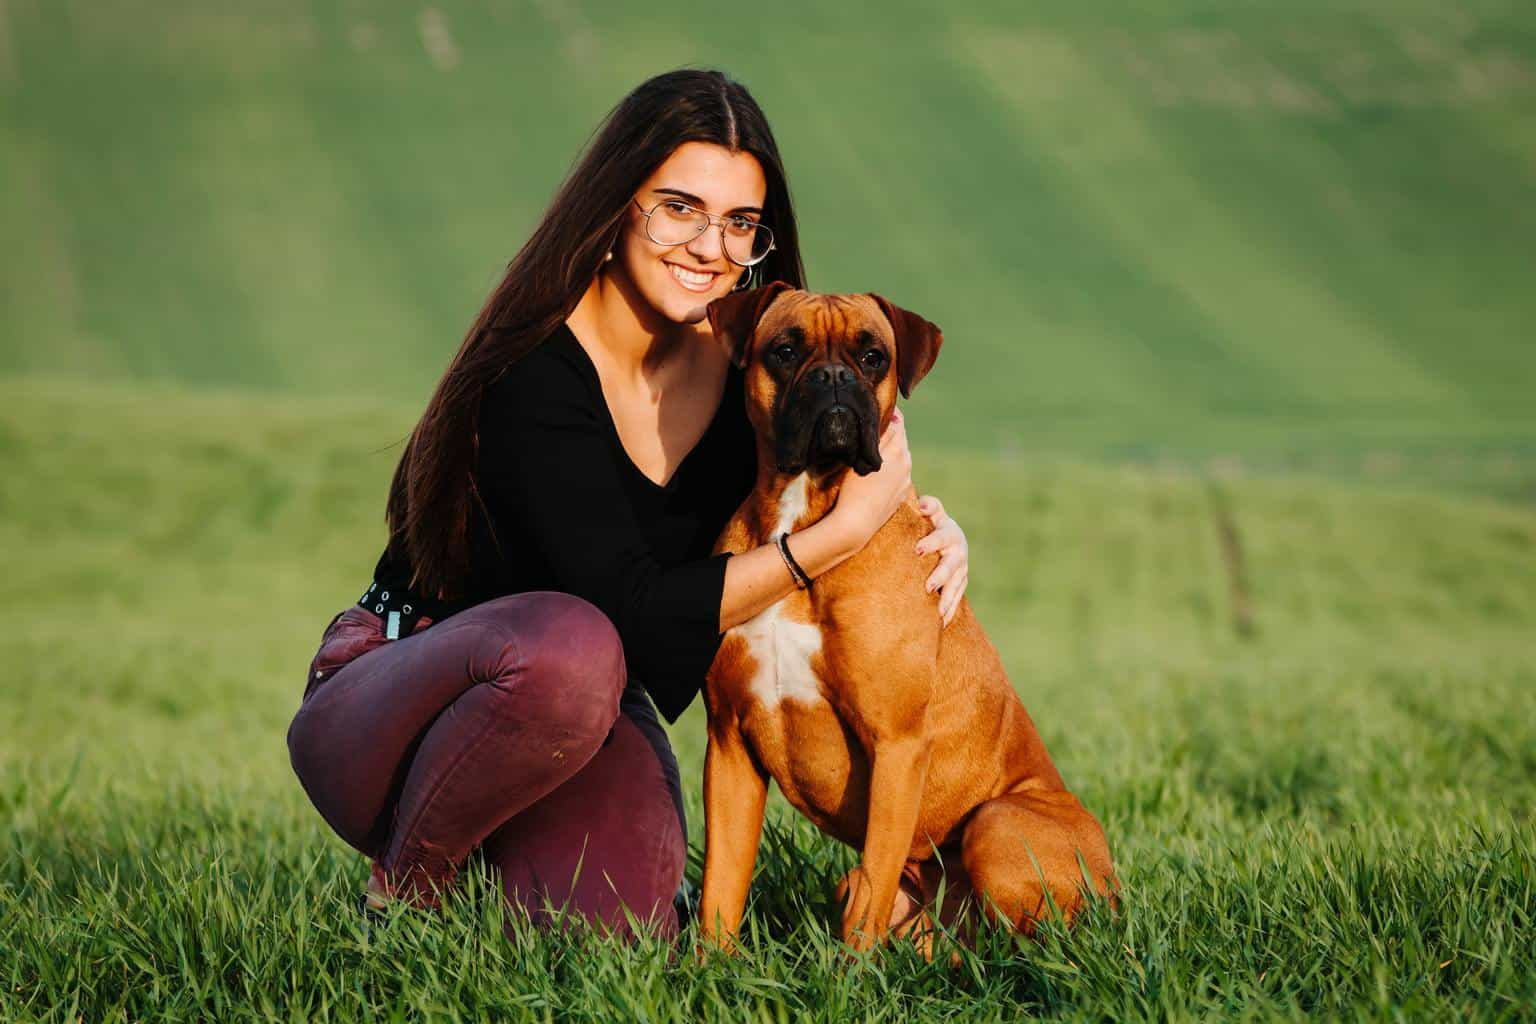 Beautiful woman playing with her dog. Outdoor portrait.